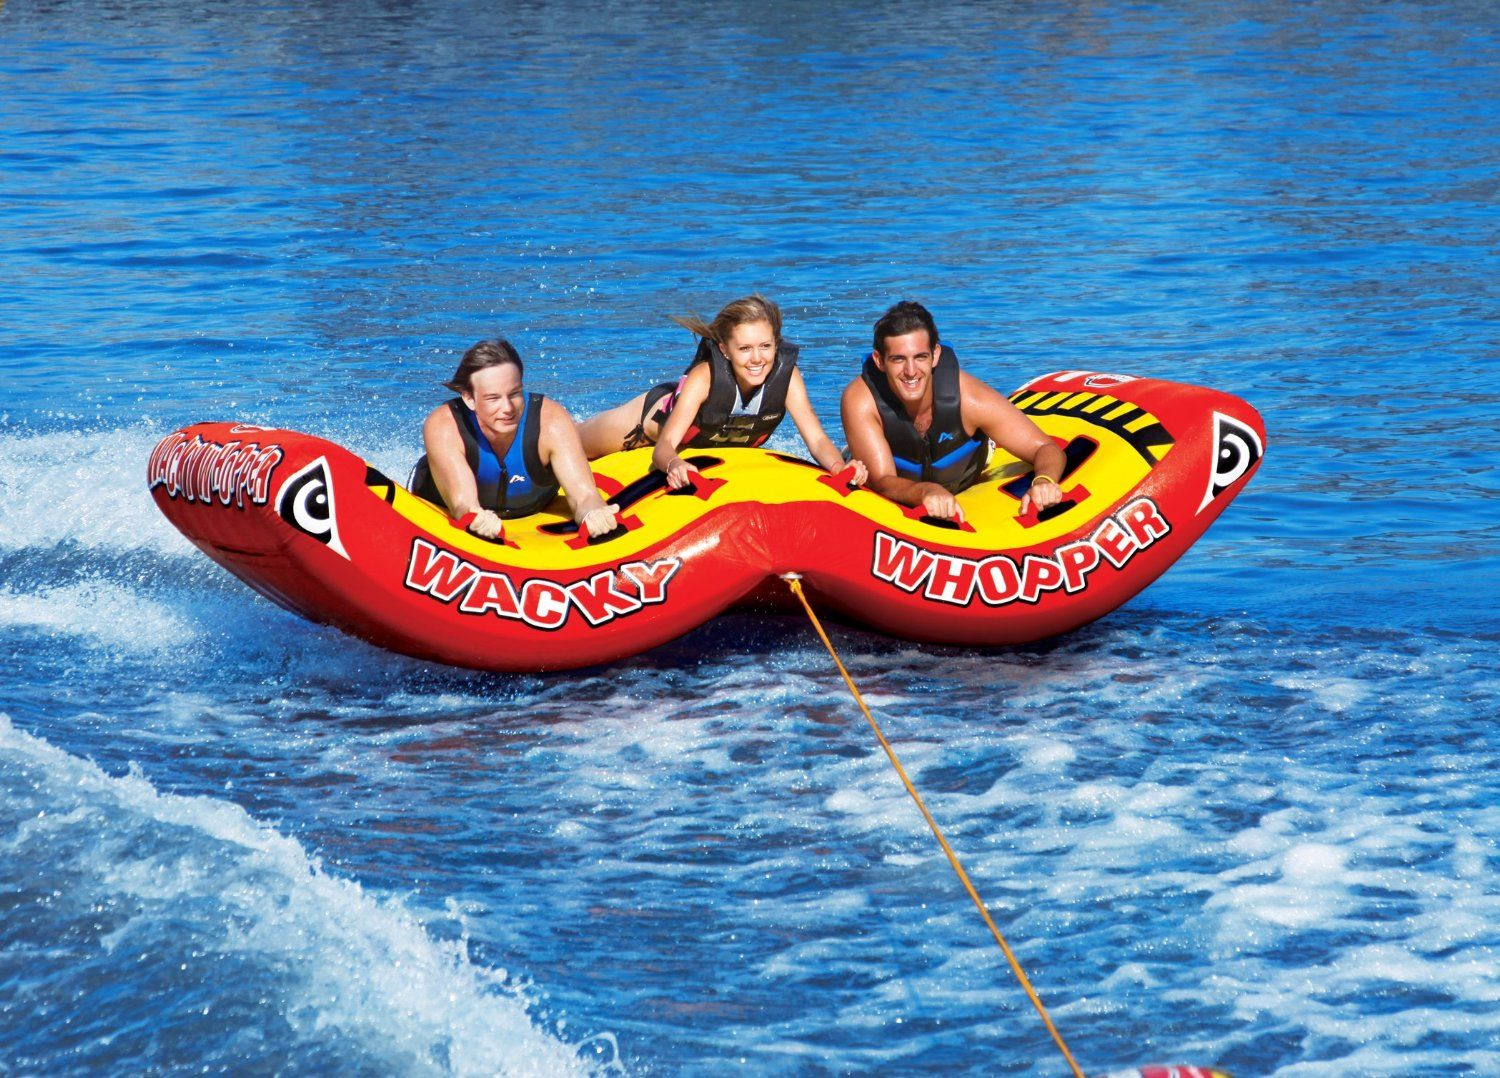 Amazon Com Sportsstuff 53 2263 Rockin Mable 3 Towable Tube 3 Rider Waterskiing Towables Sports Outdoors Water Skiing Towable Tubes Rockin